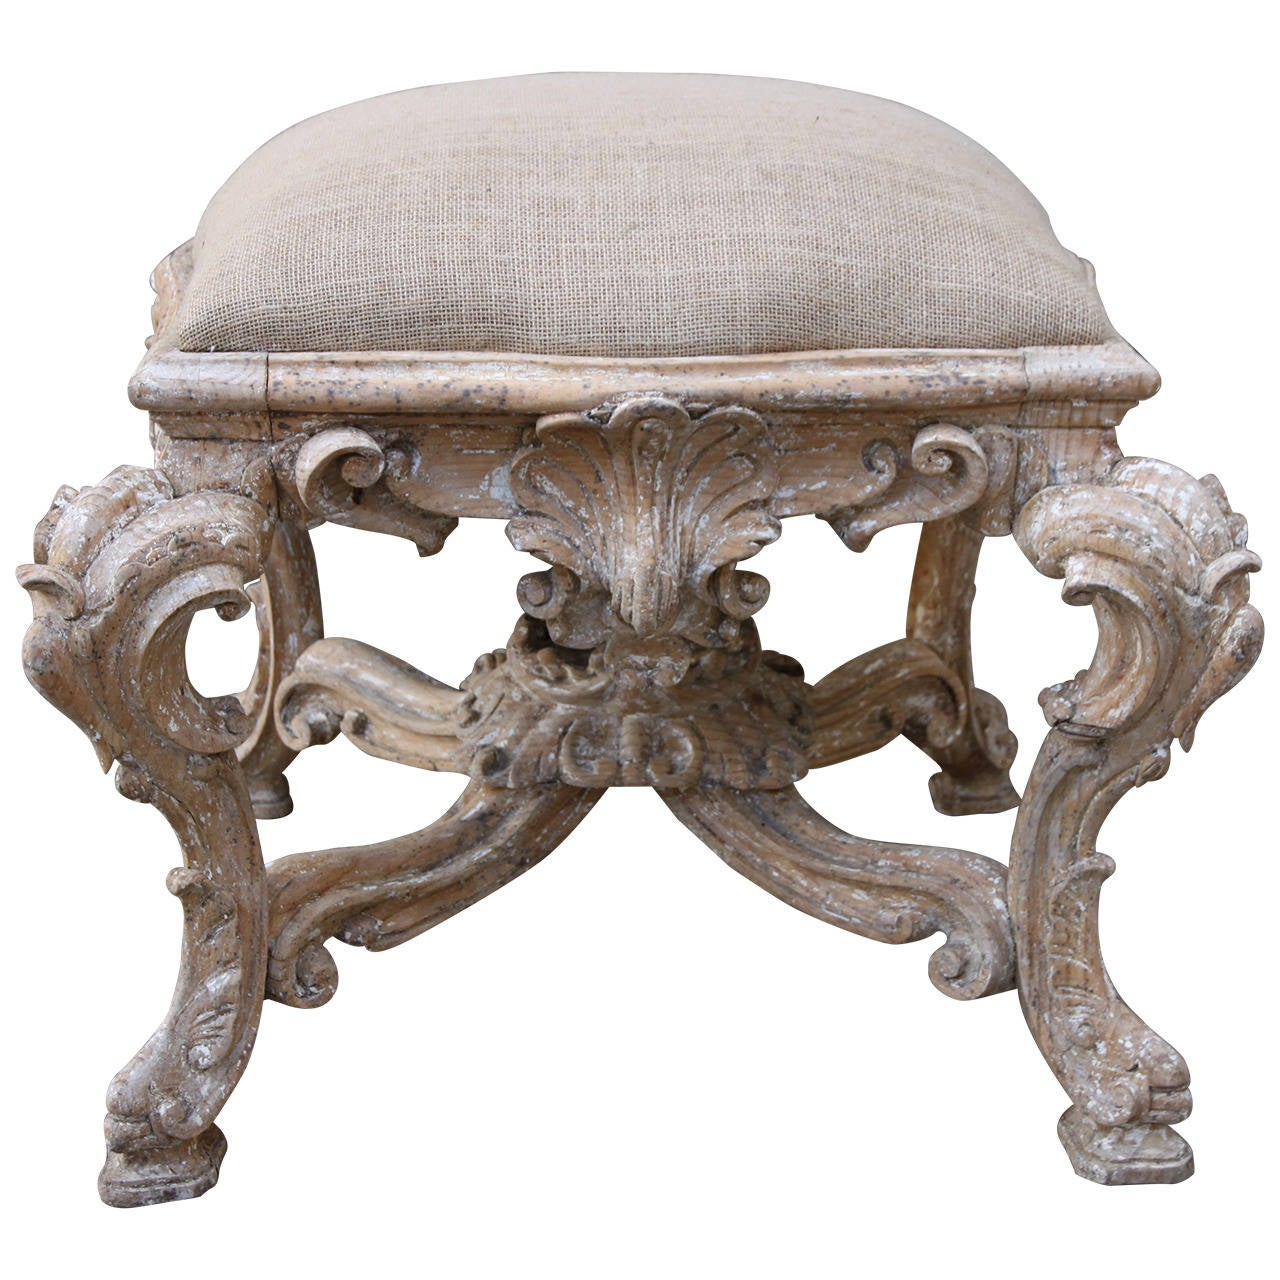 French carved rococo style bench at 1stdibs for French rococo period